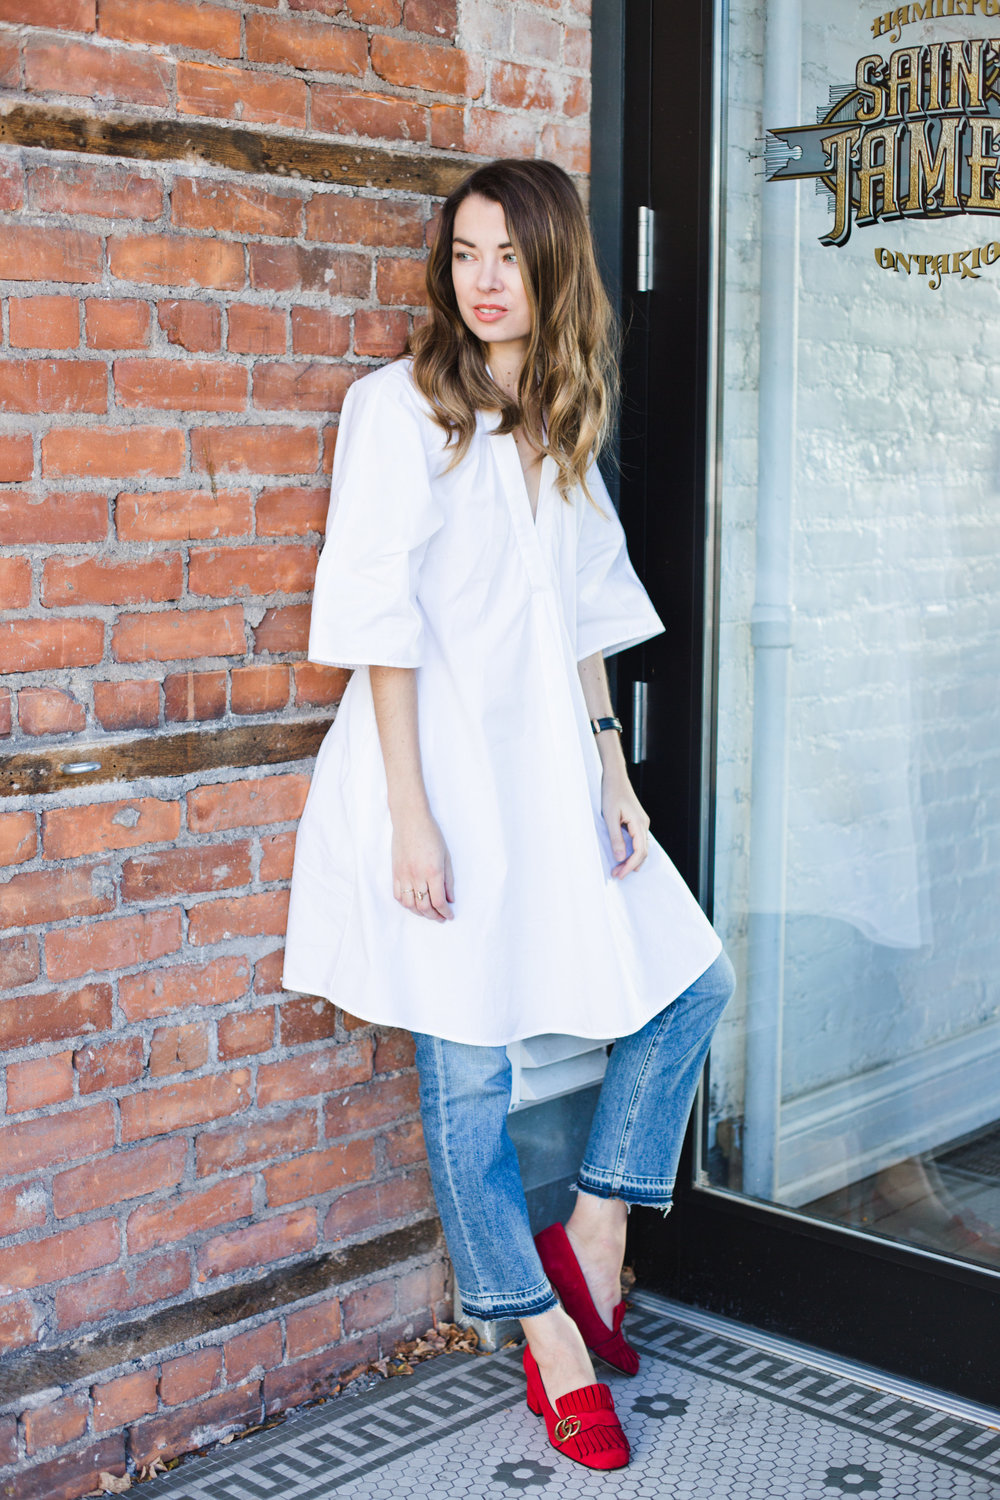 Styled: The Shirt Dress